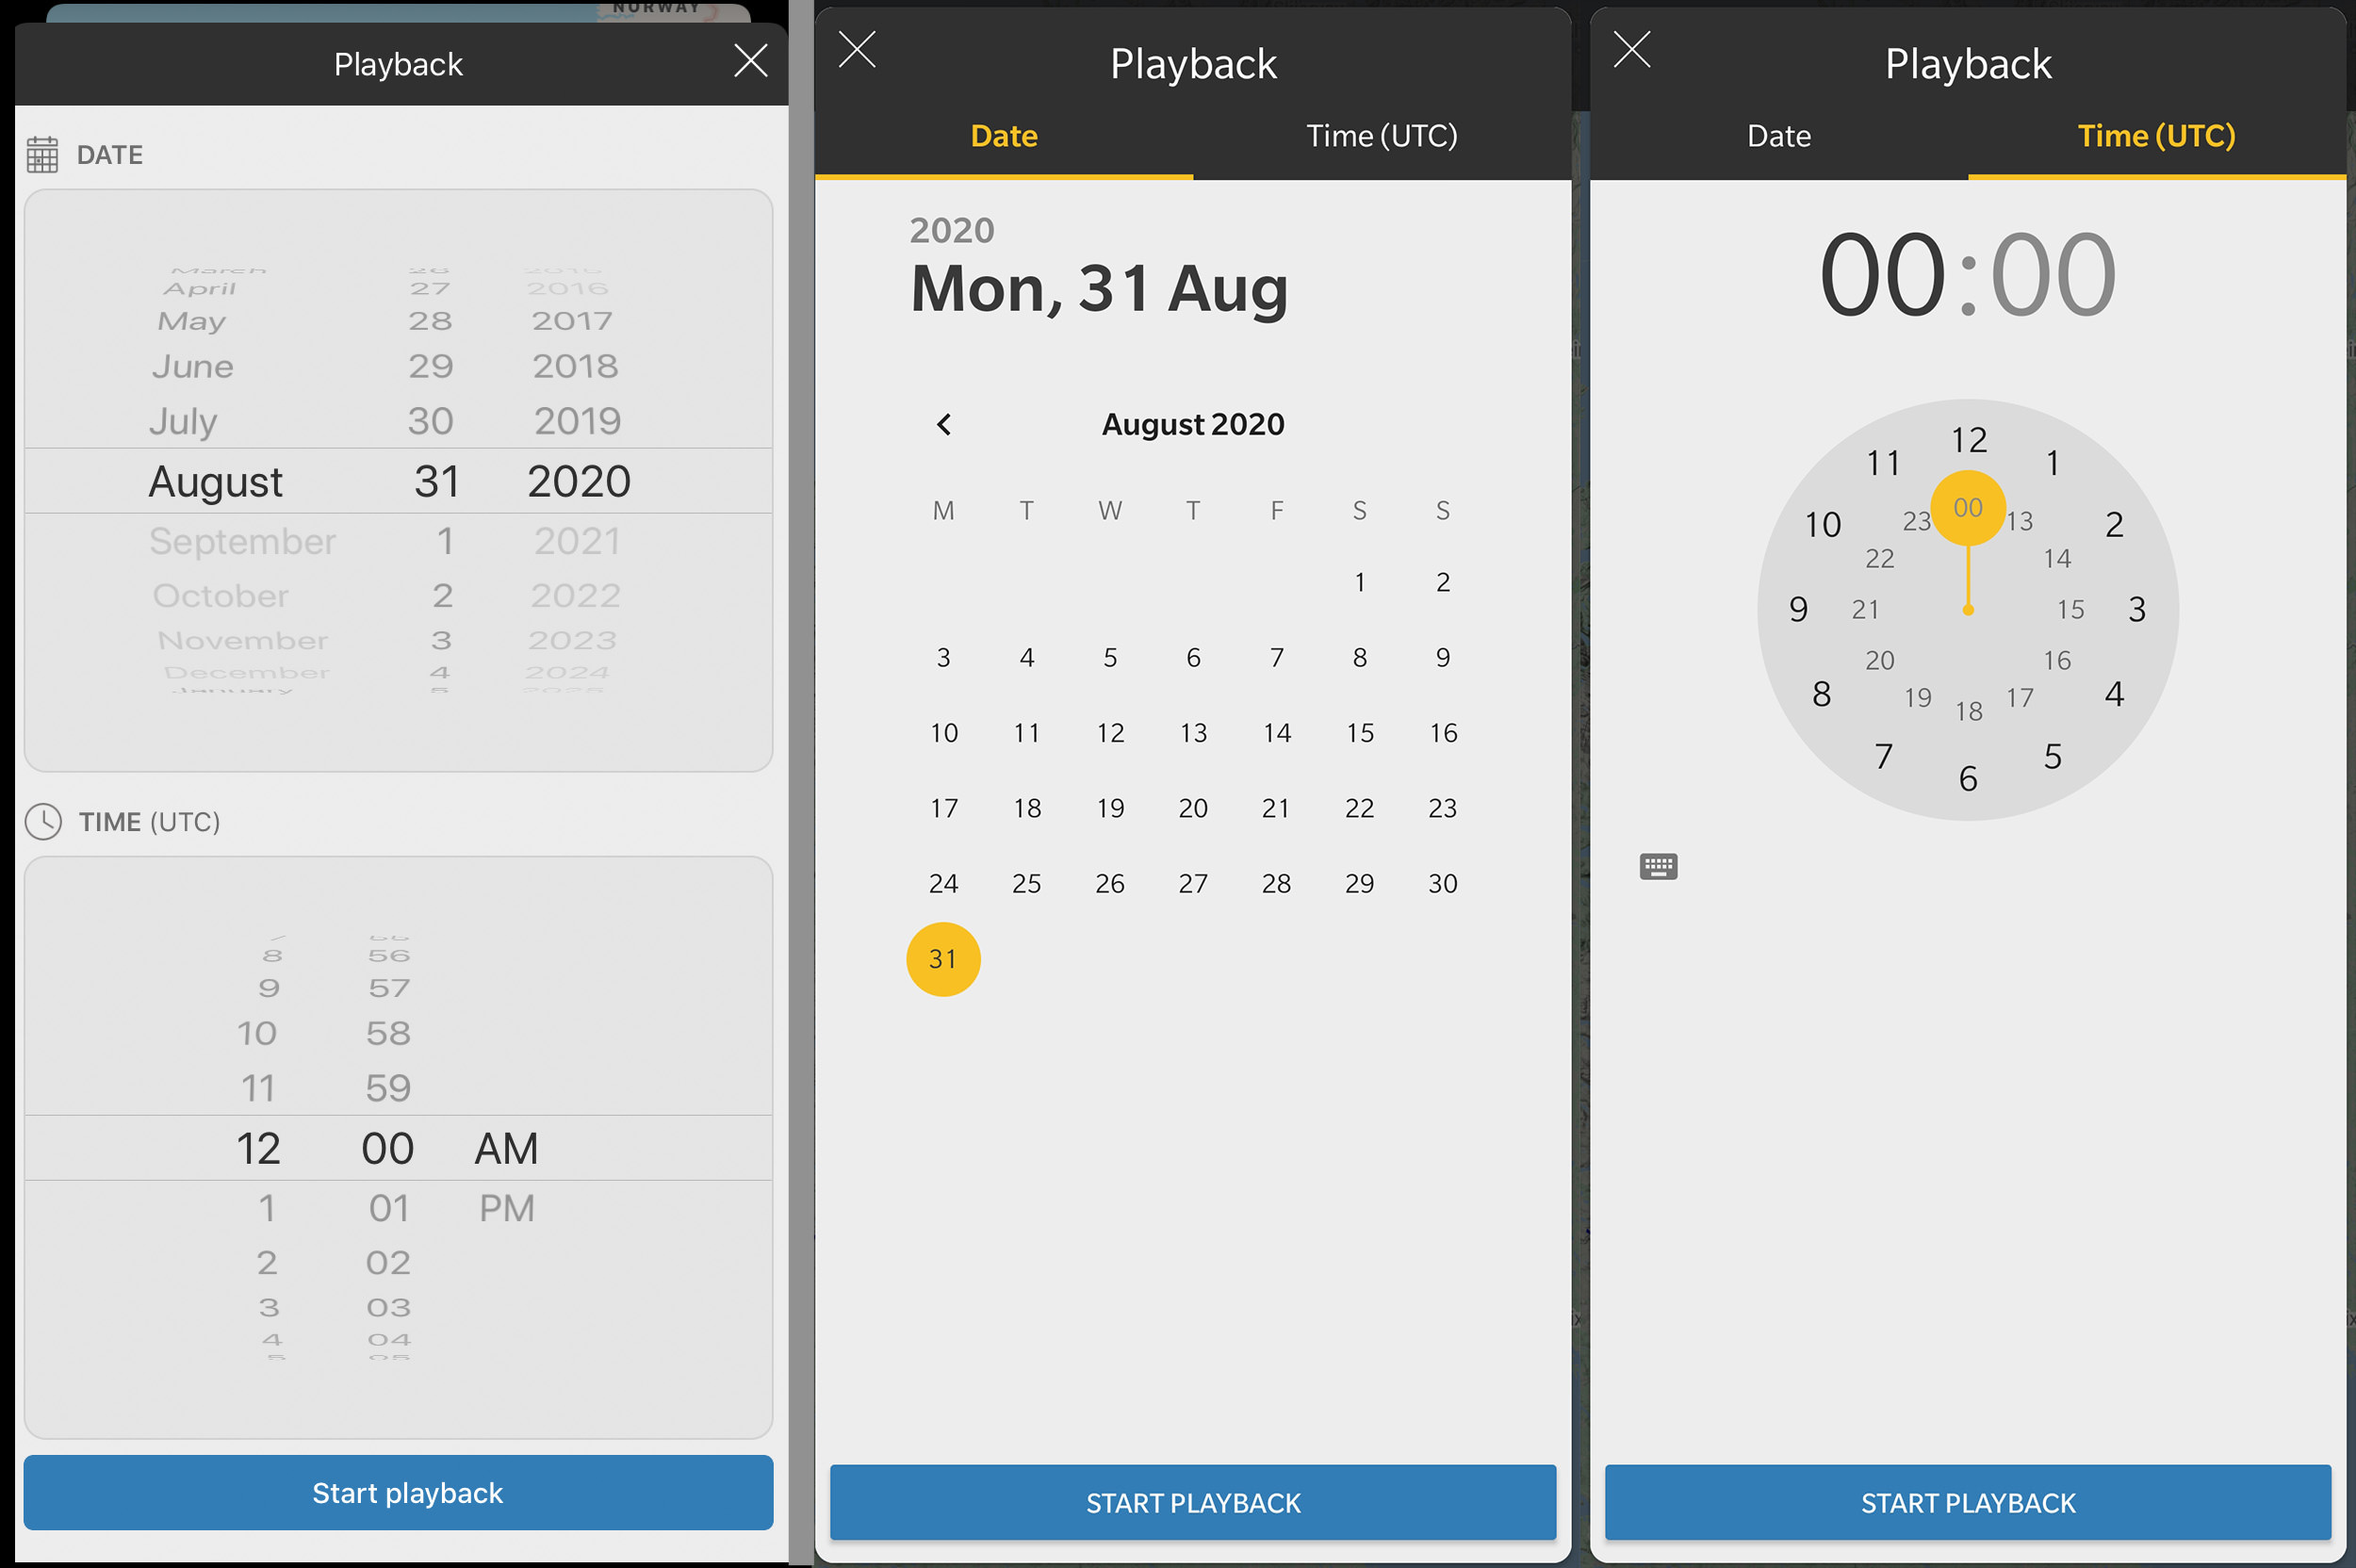 iOS and Android Date and Time playback selectors